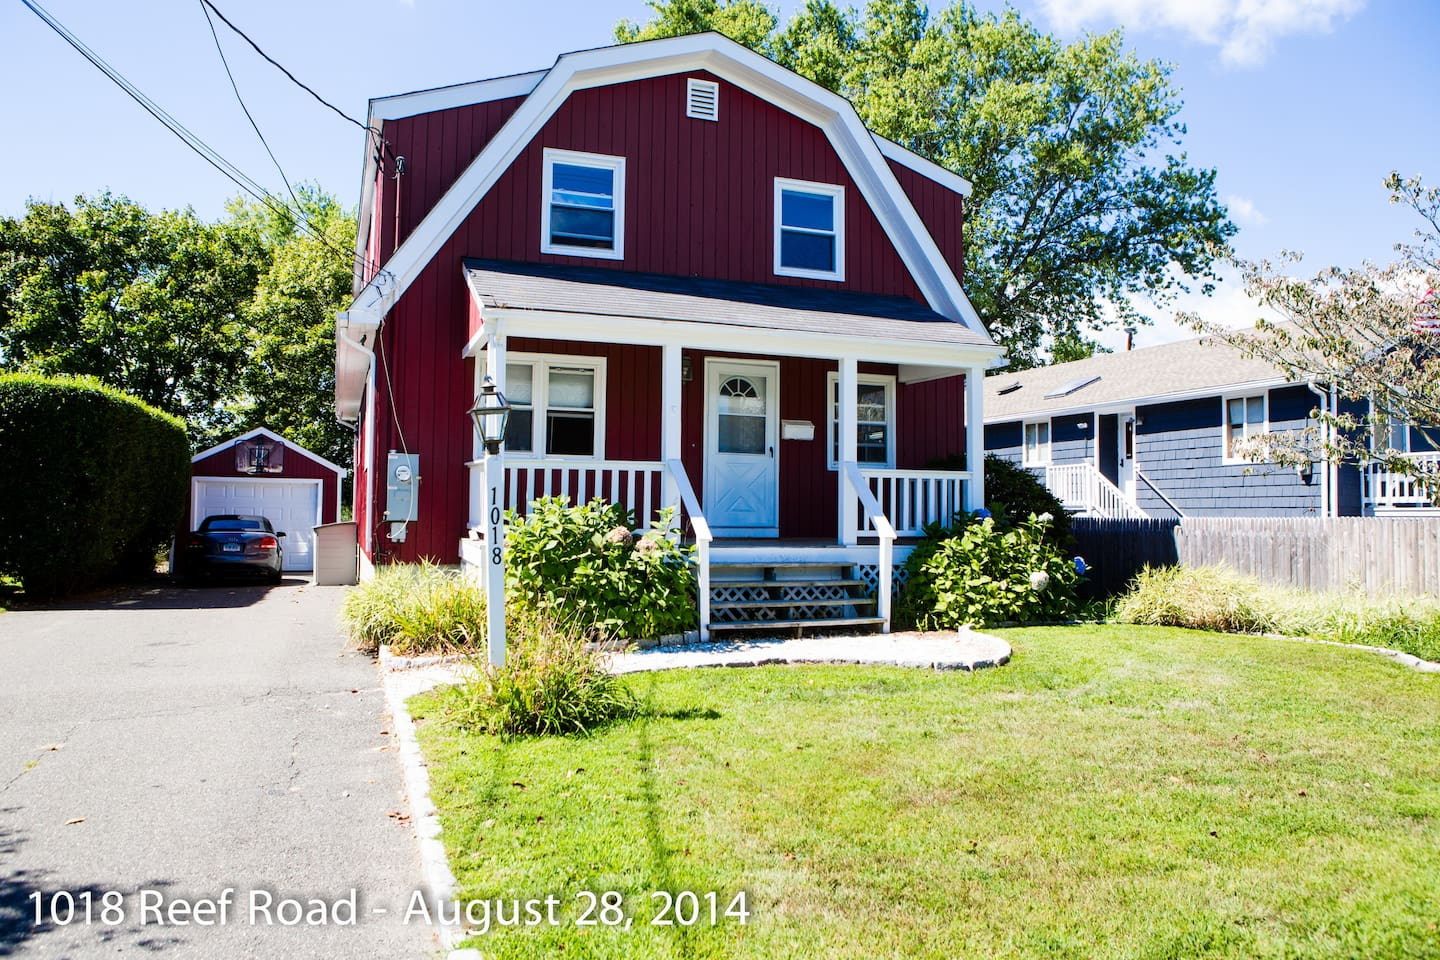 Summer Rental in Fairfield - 1800 Square feet, 3 bedroom, 2 full baths, central air, washer/dryer in the heart of Fairfield Beach area. Walking distance from Penfield Beach, one mile from the center of Fairfield and the train station.